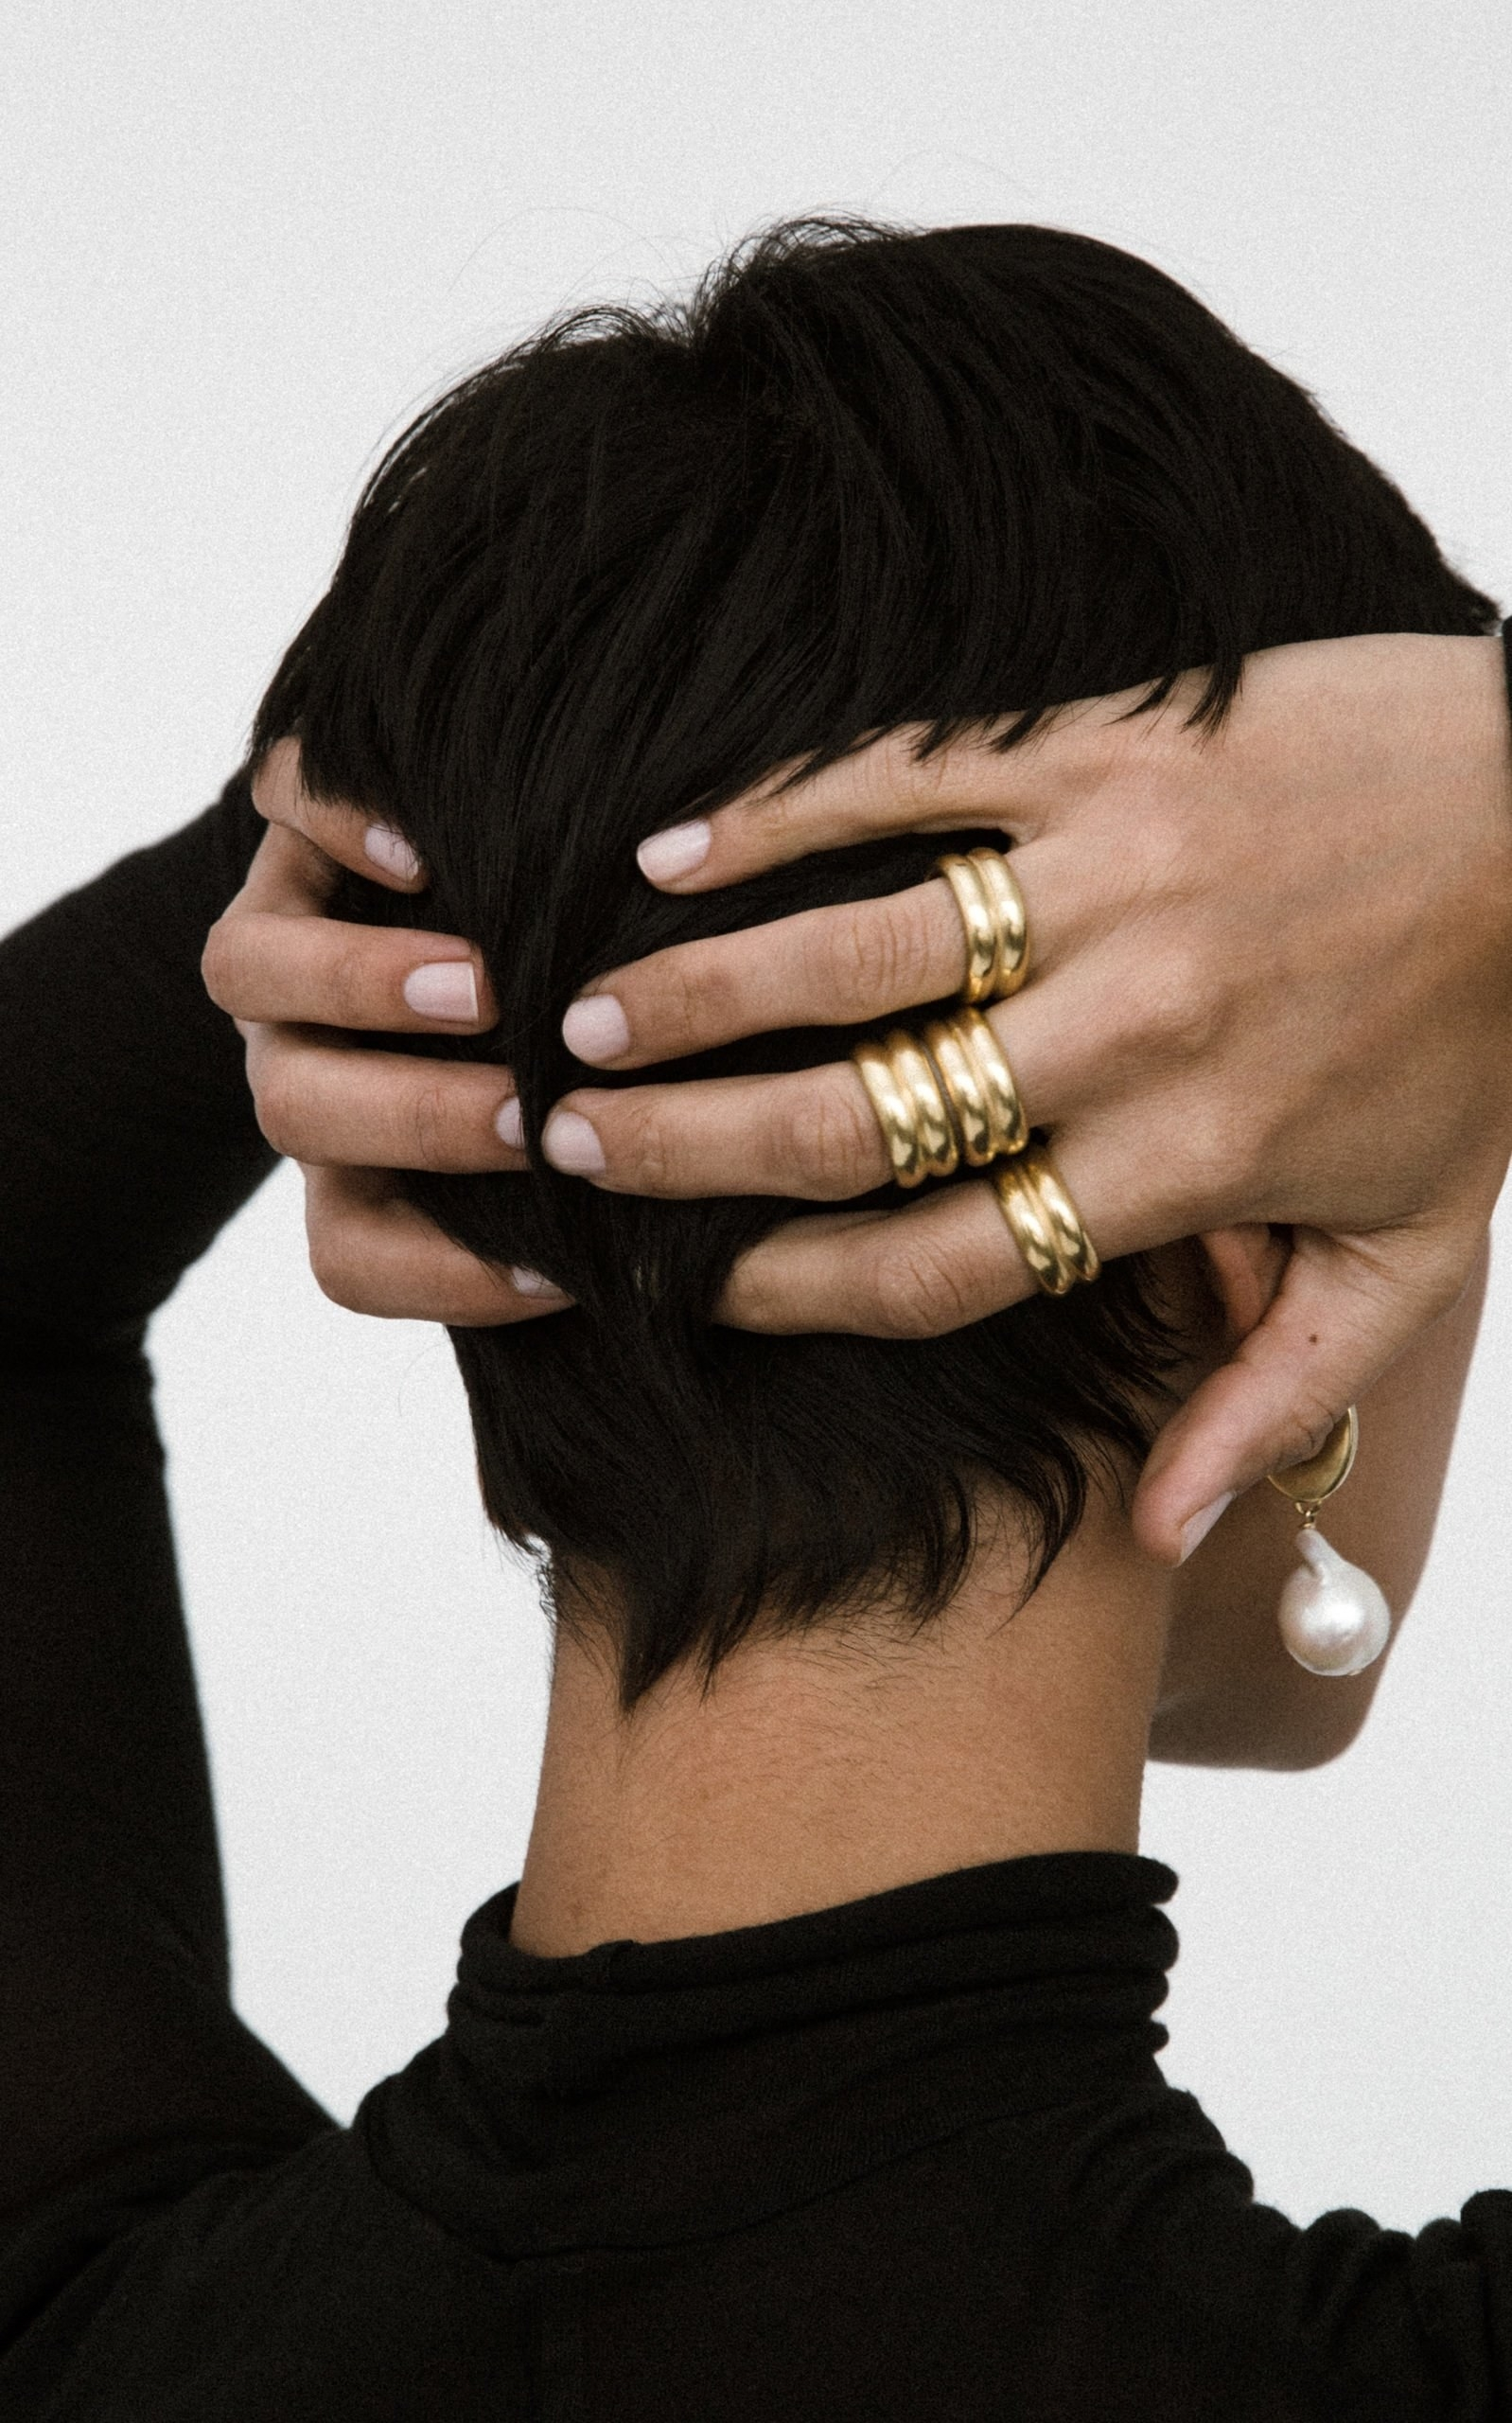 model wearing the ring